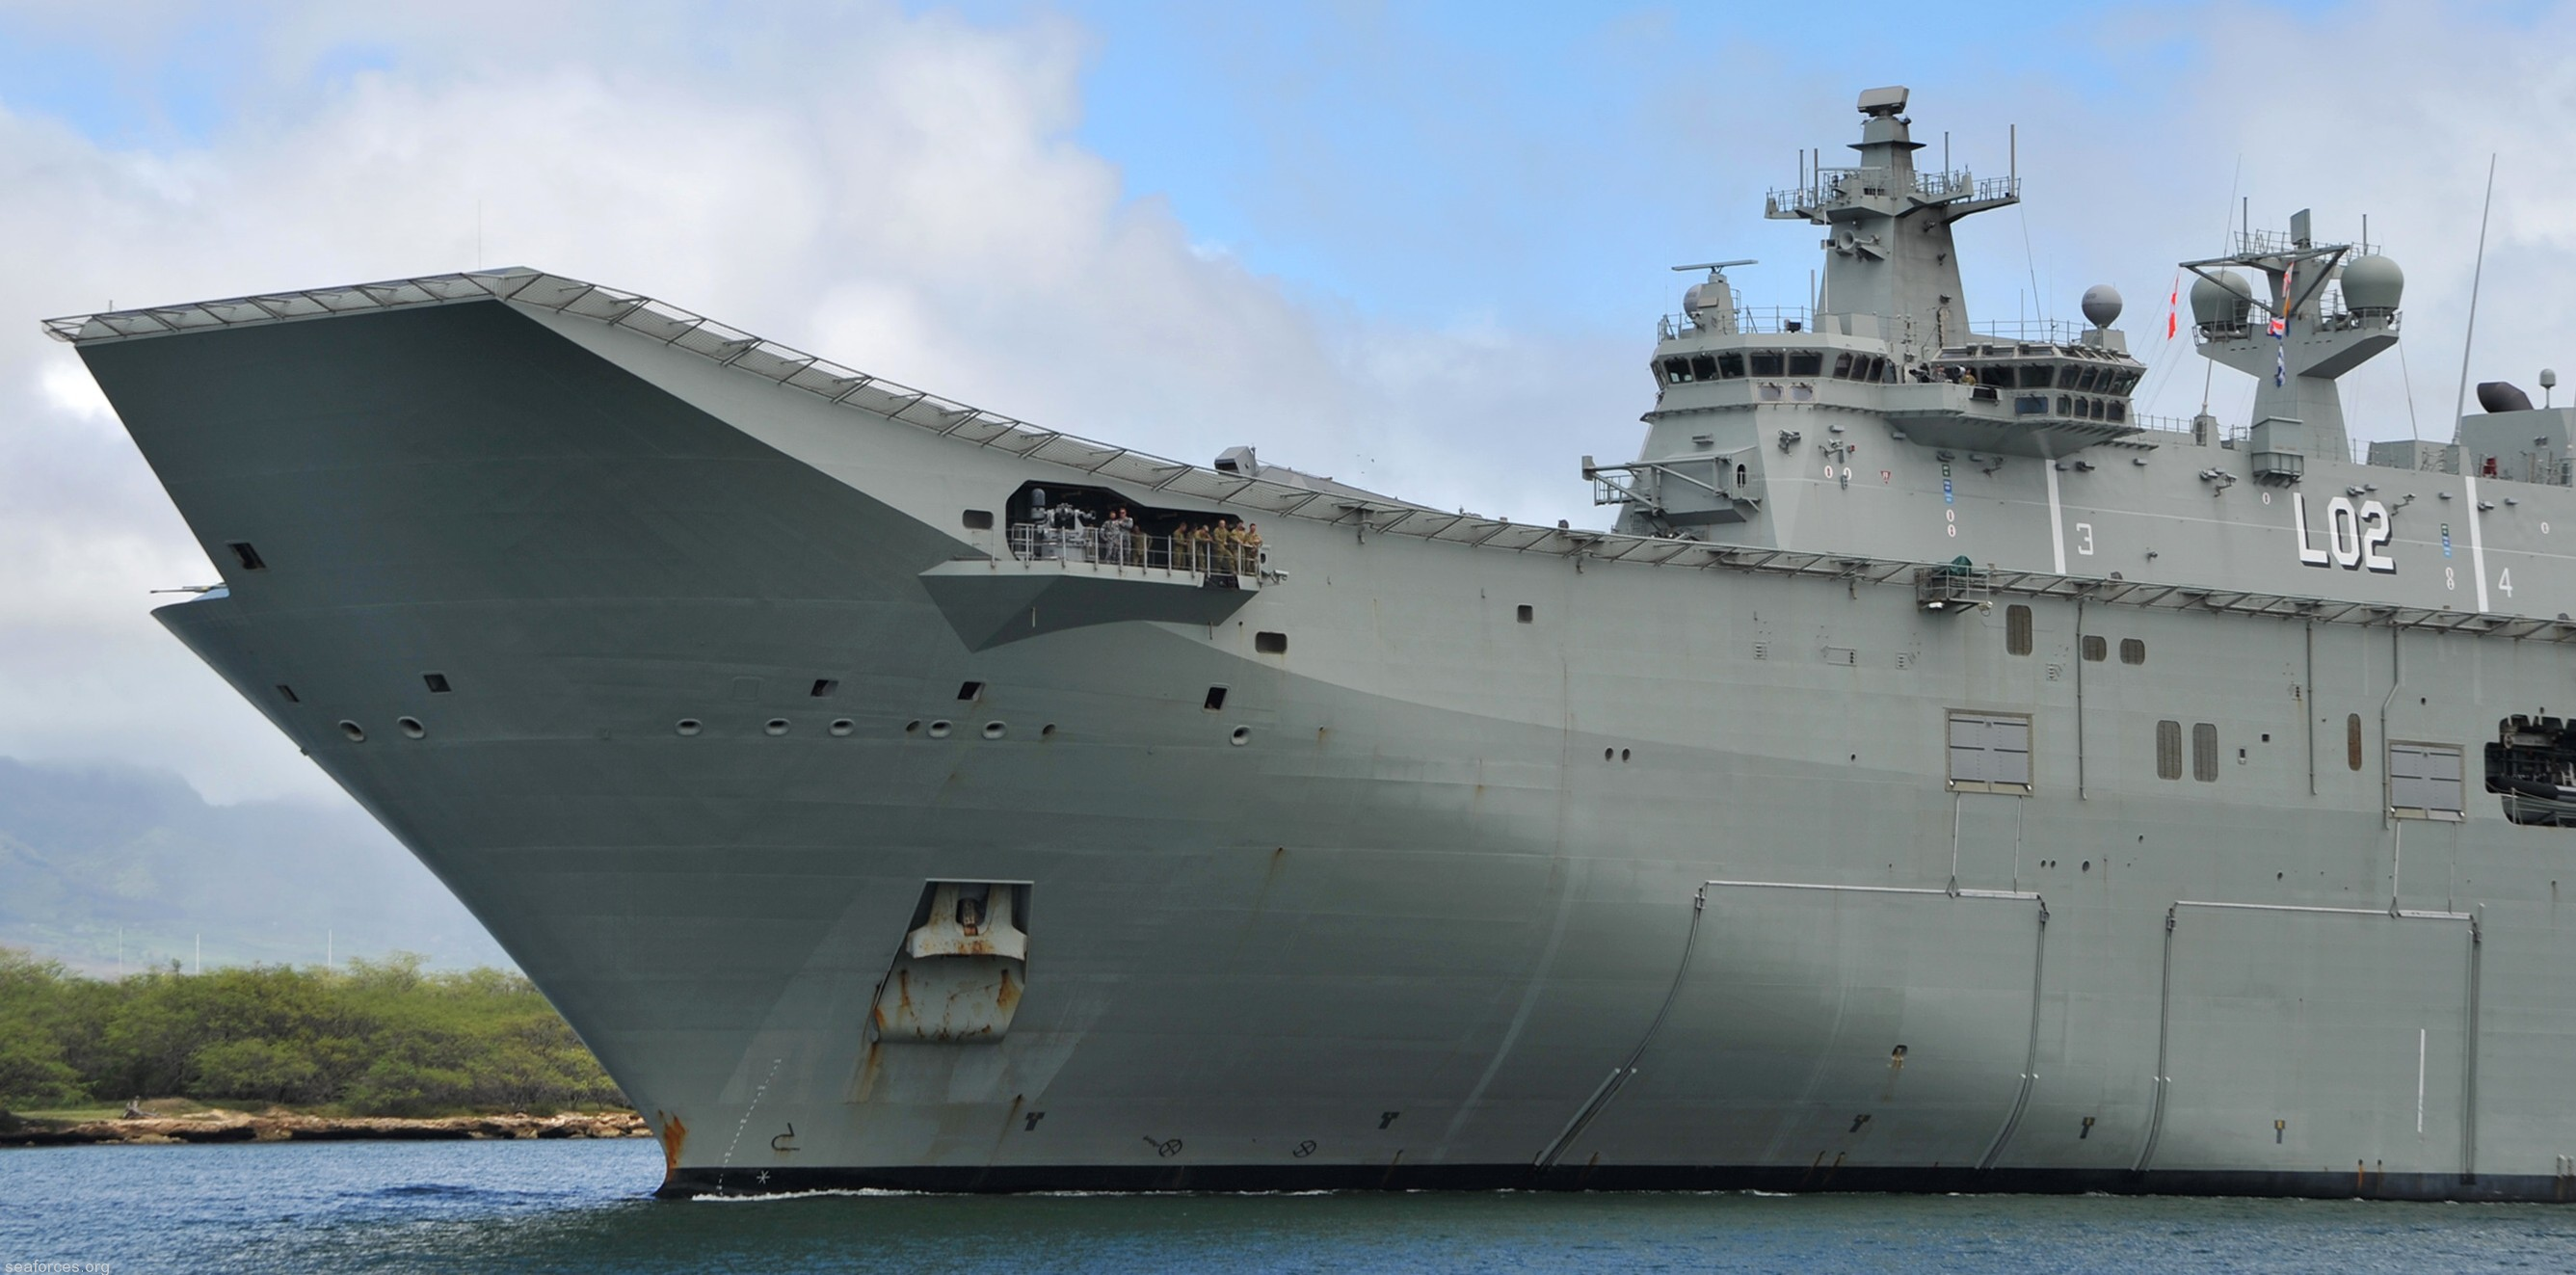 France S President Emmanuel Ron Delivers A Sch Onboard The Australian Aircraft Carrier Hmas Canberra In Sydney